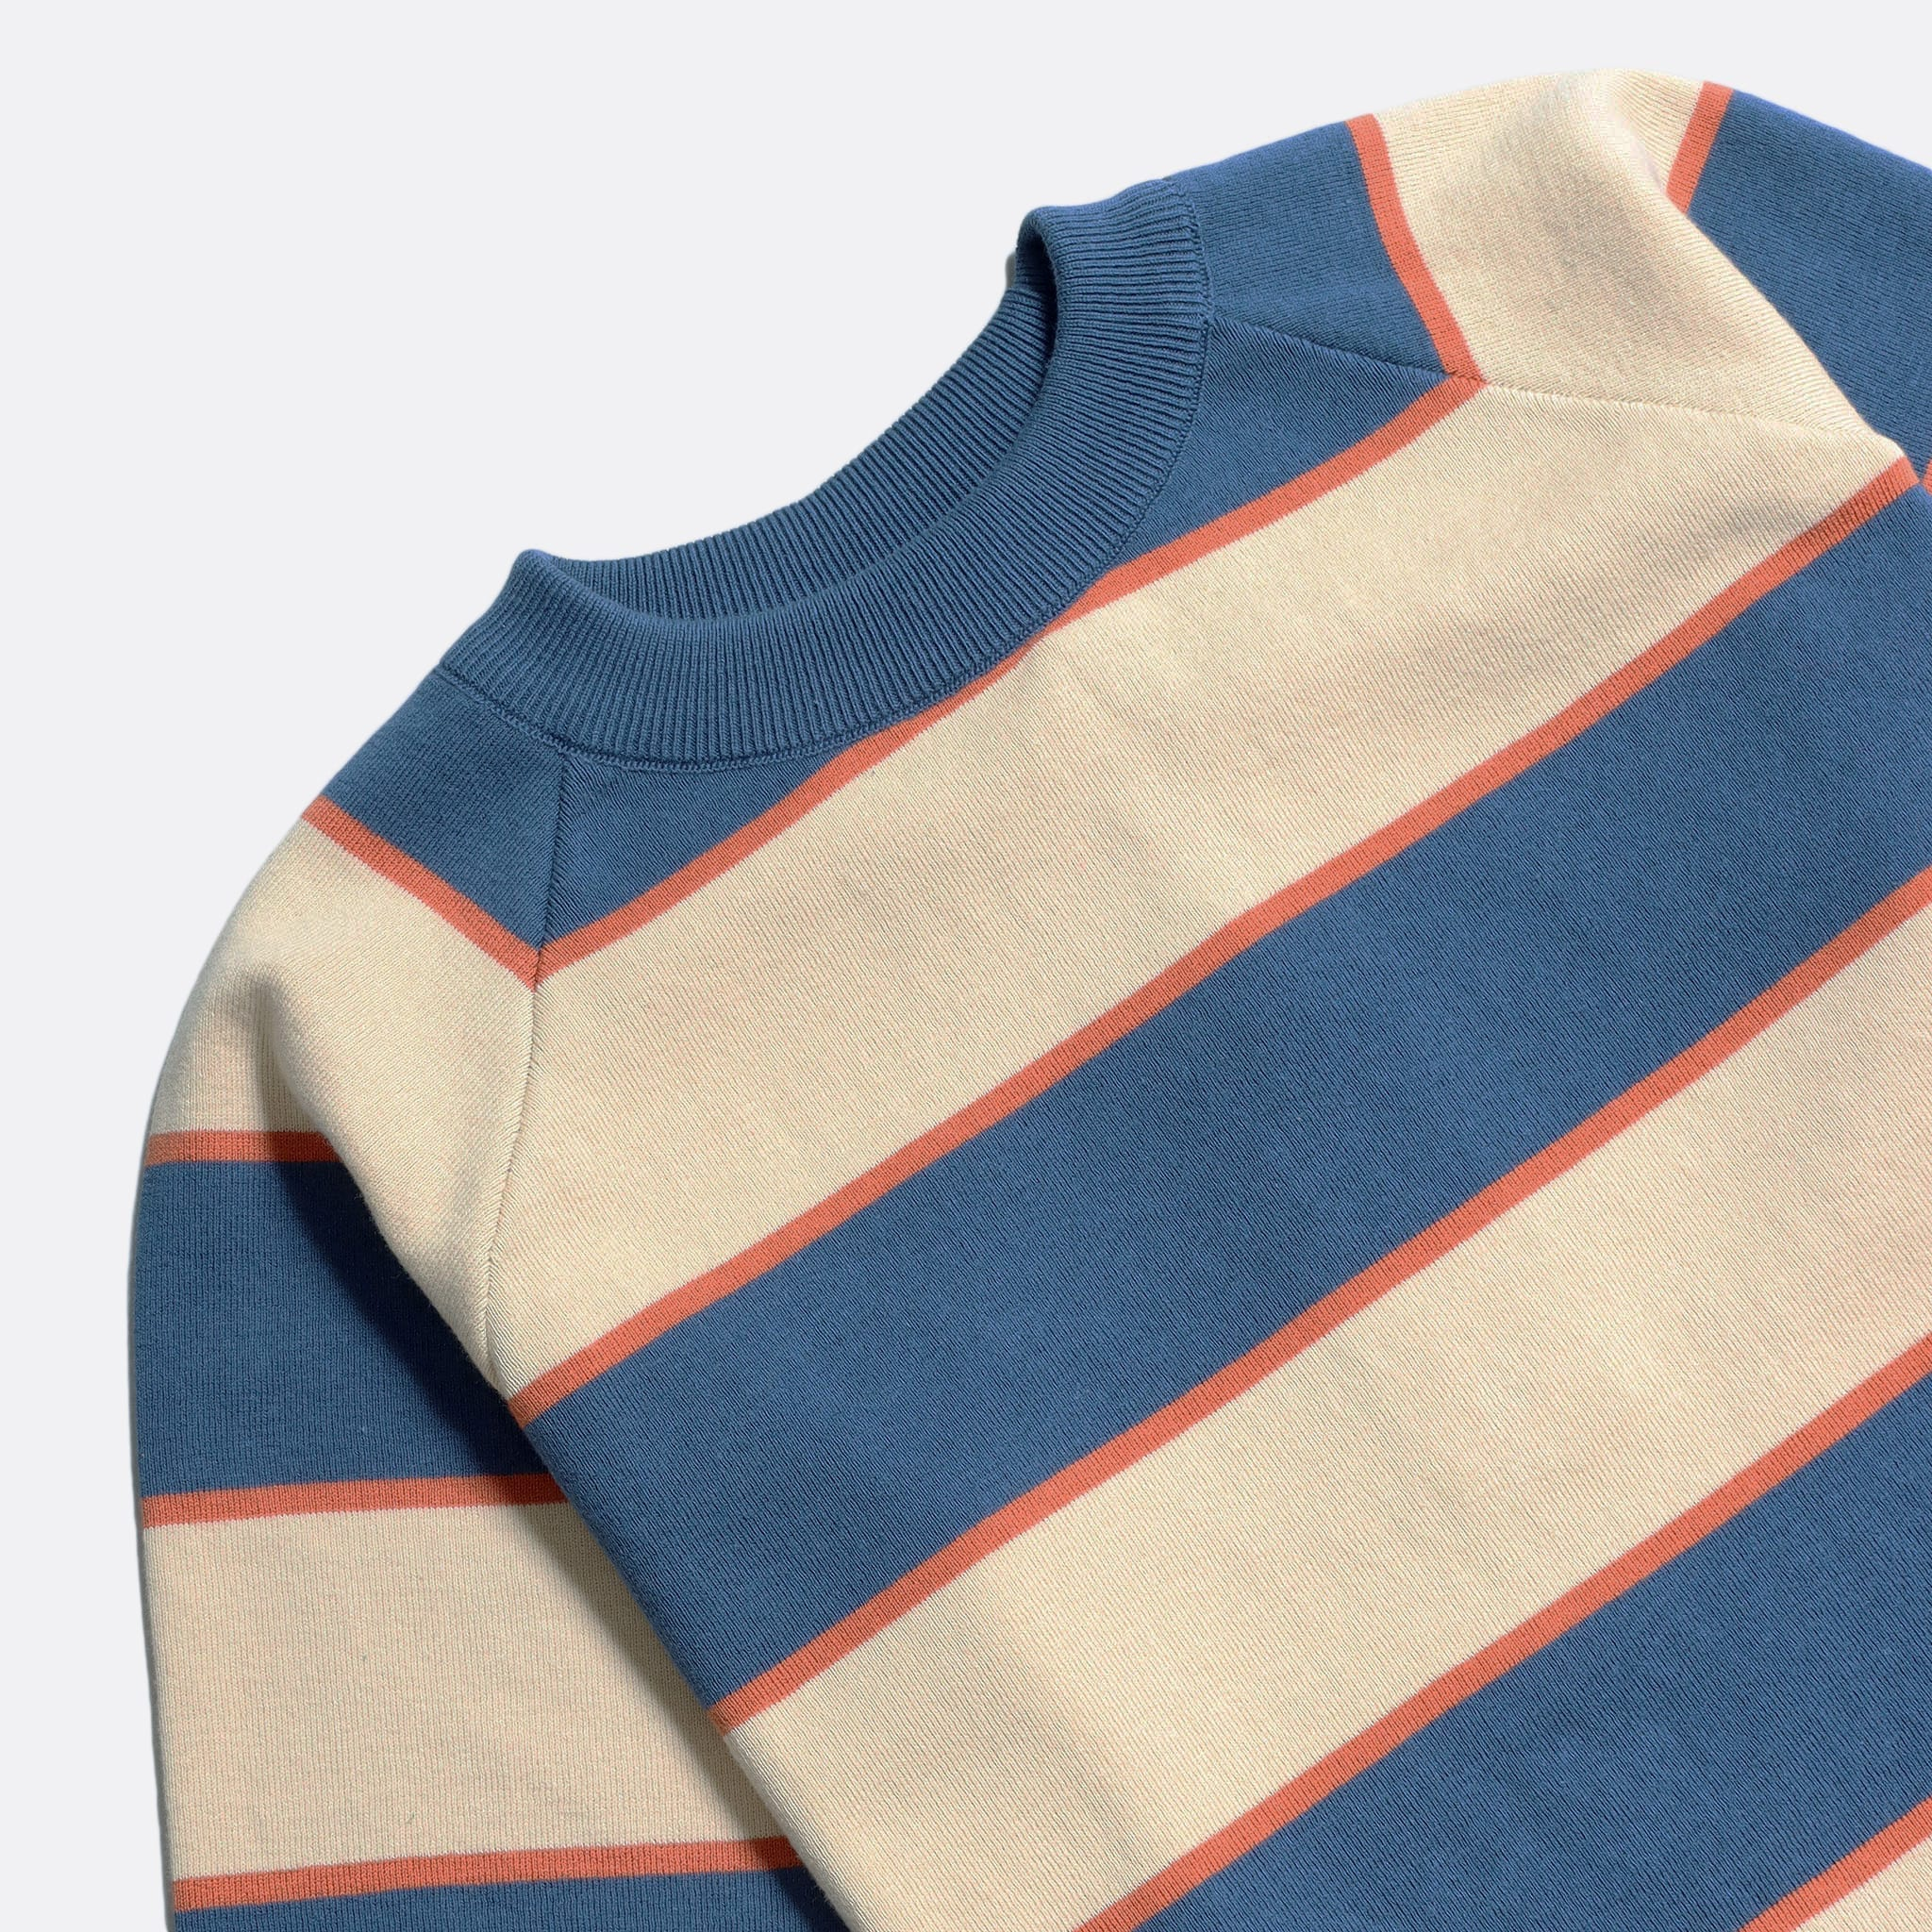 Far Afield Newport T-Shirt a Ensign Blue/Lambs White Organic Cotton Fabric Short Sleeve Mid Century Inspired 4